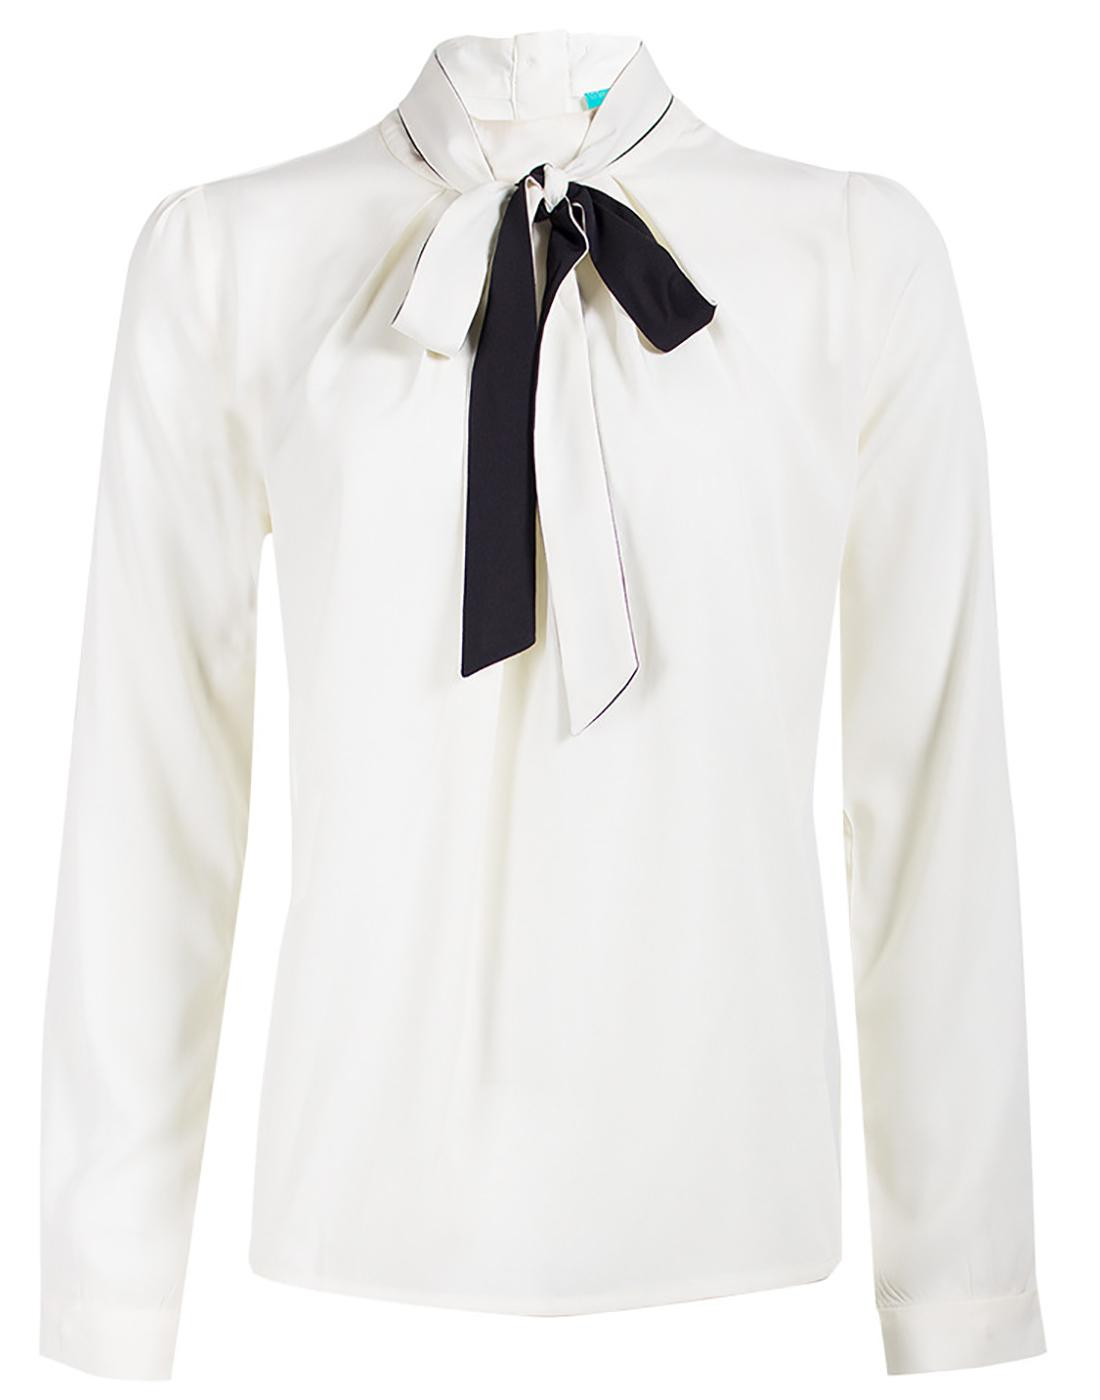 Pippa FEVER Retro Vintage Bow Collar Shirt - Cream